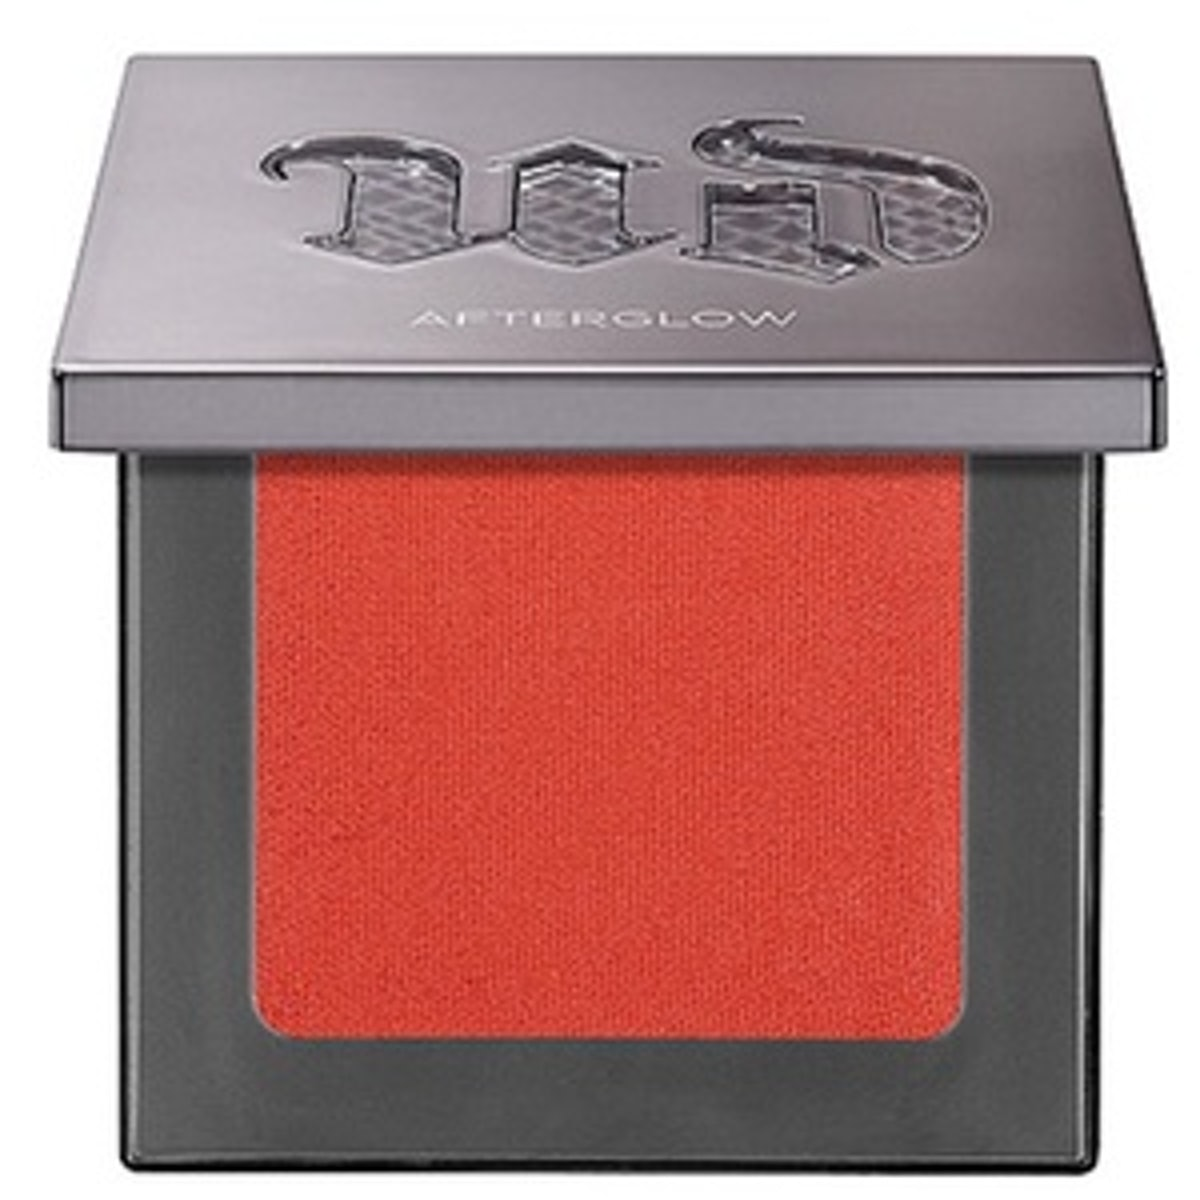 Urban Decay Afterglow 8 Hour Powder Blush in Bang